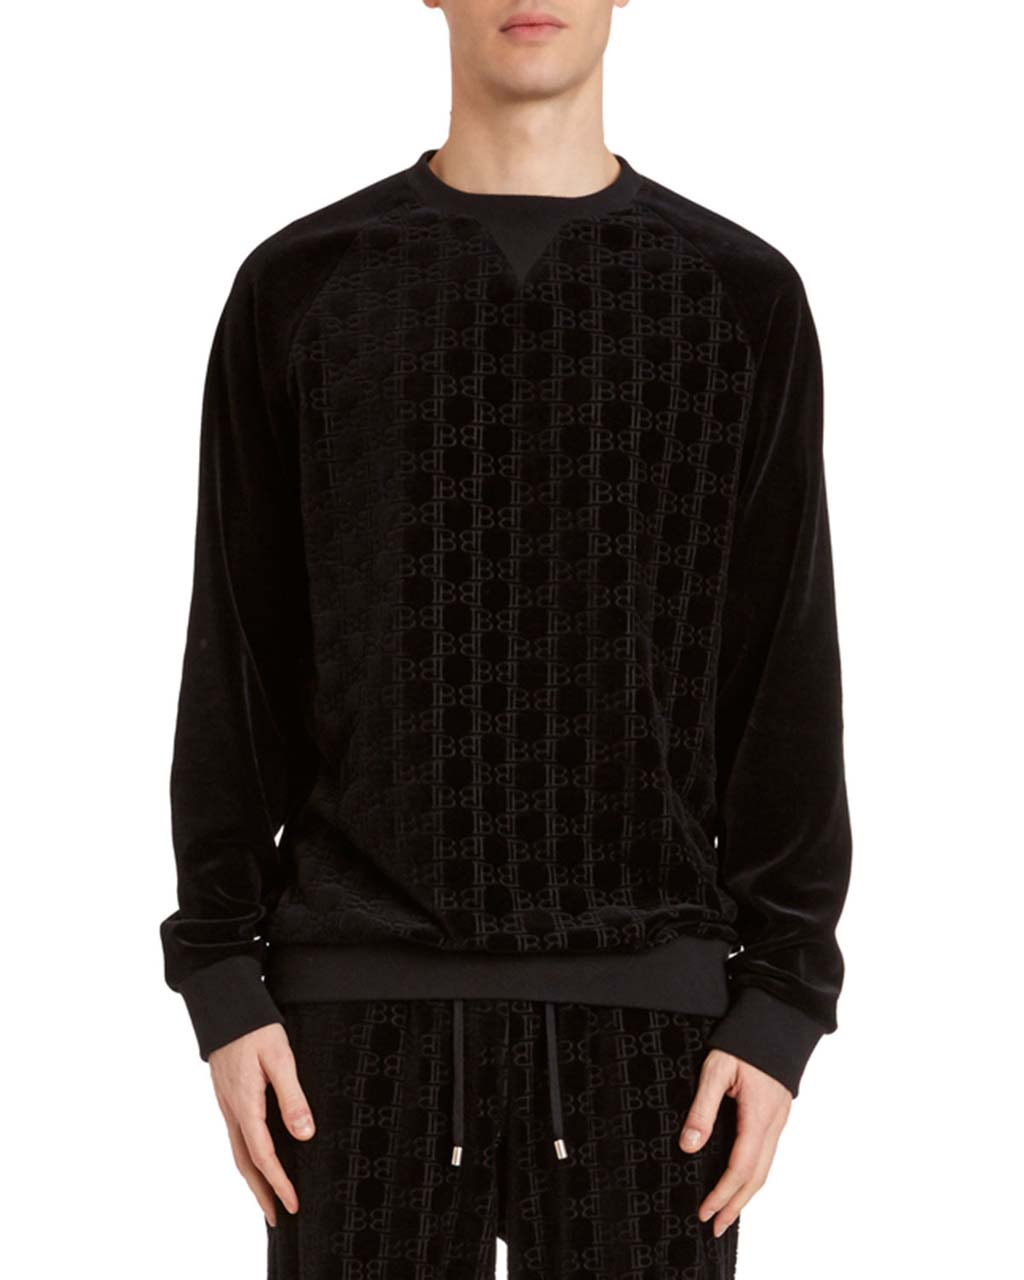 Balmain Men's Velvet Monogram Sweatshirt